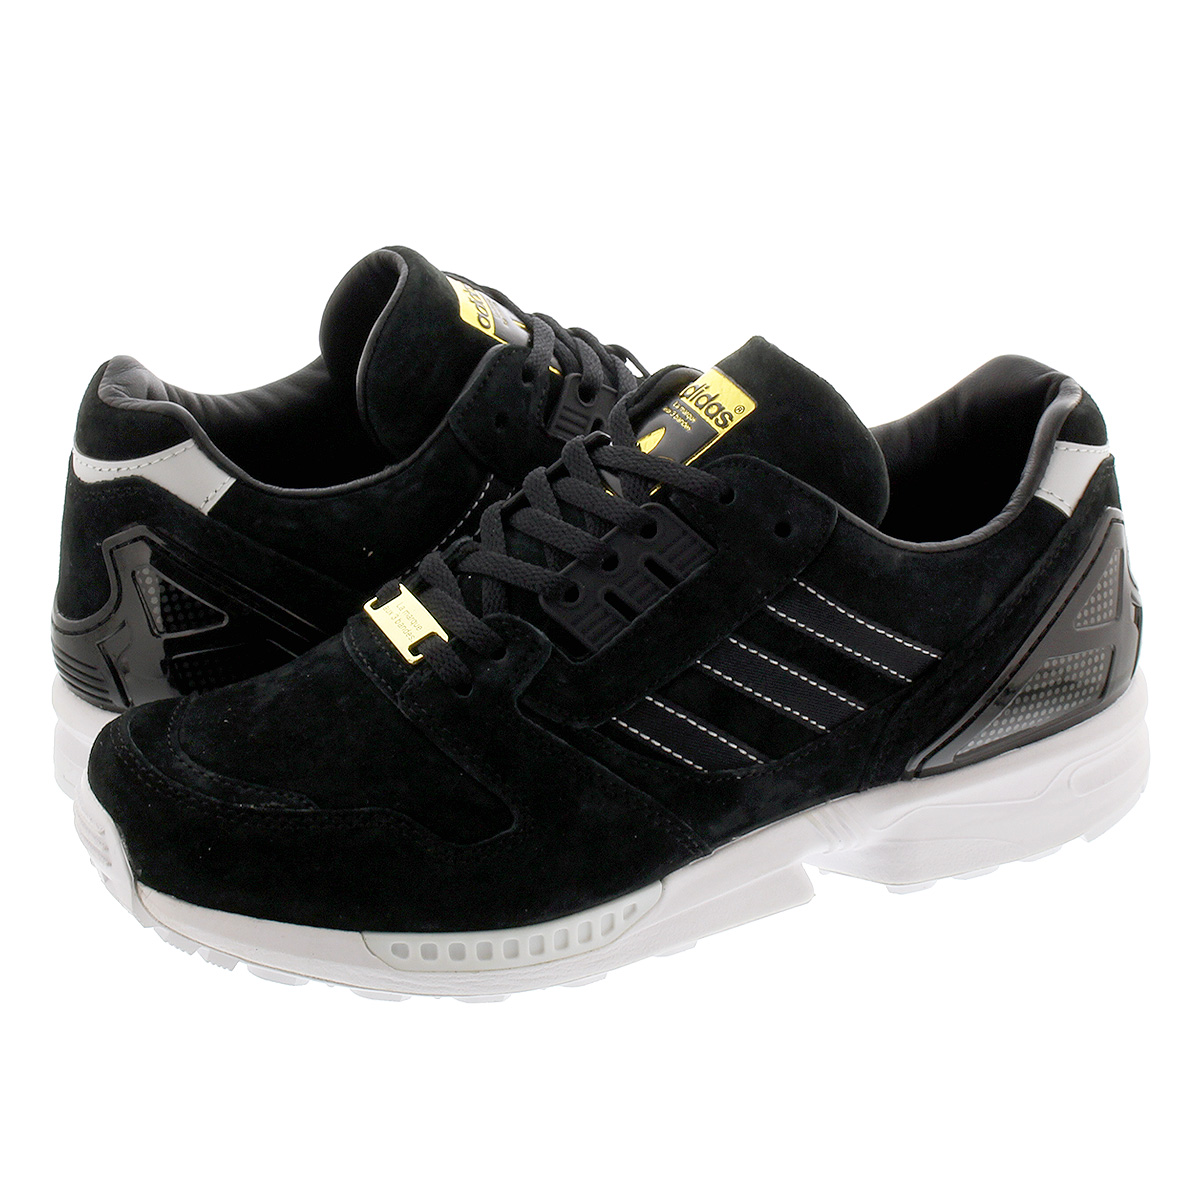 adidas ZX 8000 アディダス ZX 8000 CORE BLACK/CORE BLACK/FTWR WHITE eh1505